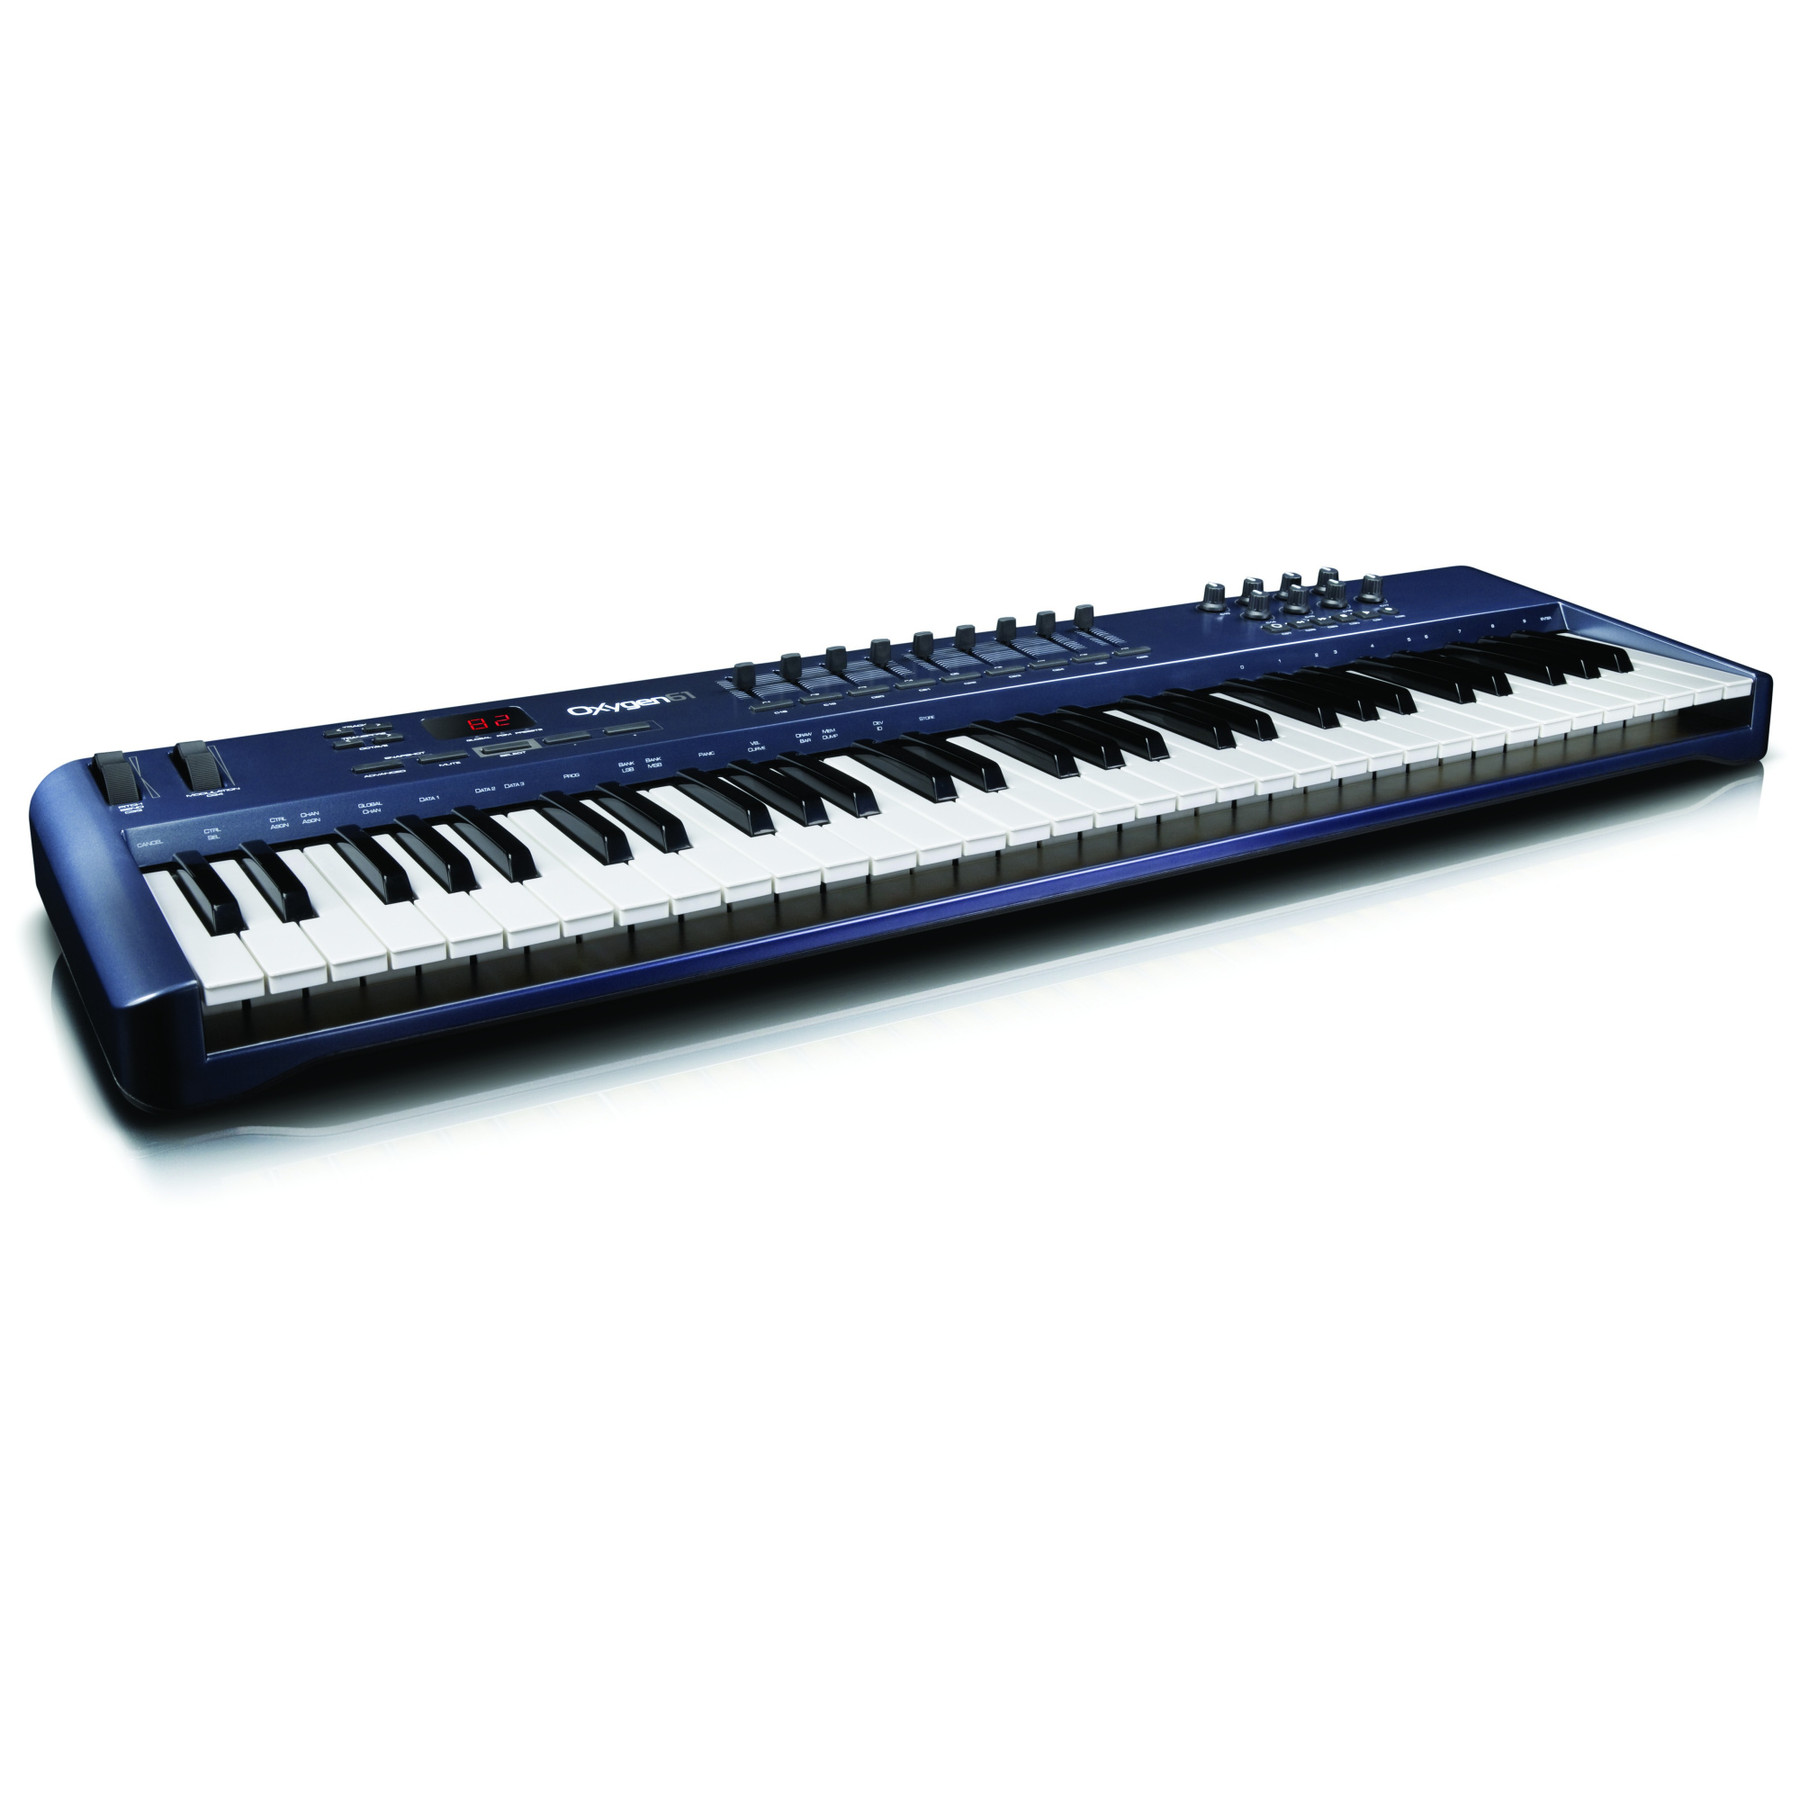 m audio oxygen 61 61 key usb midi keyboard controller ebay. Black Bedroom Furniture Sets. Home Design Ideas